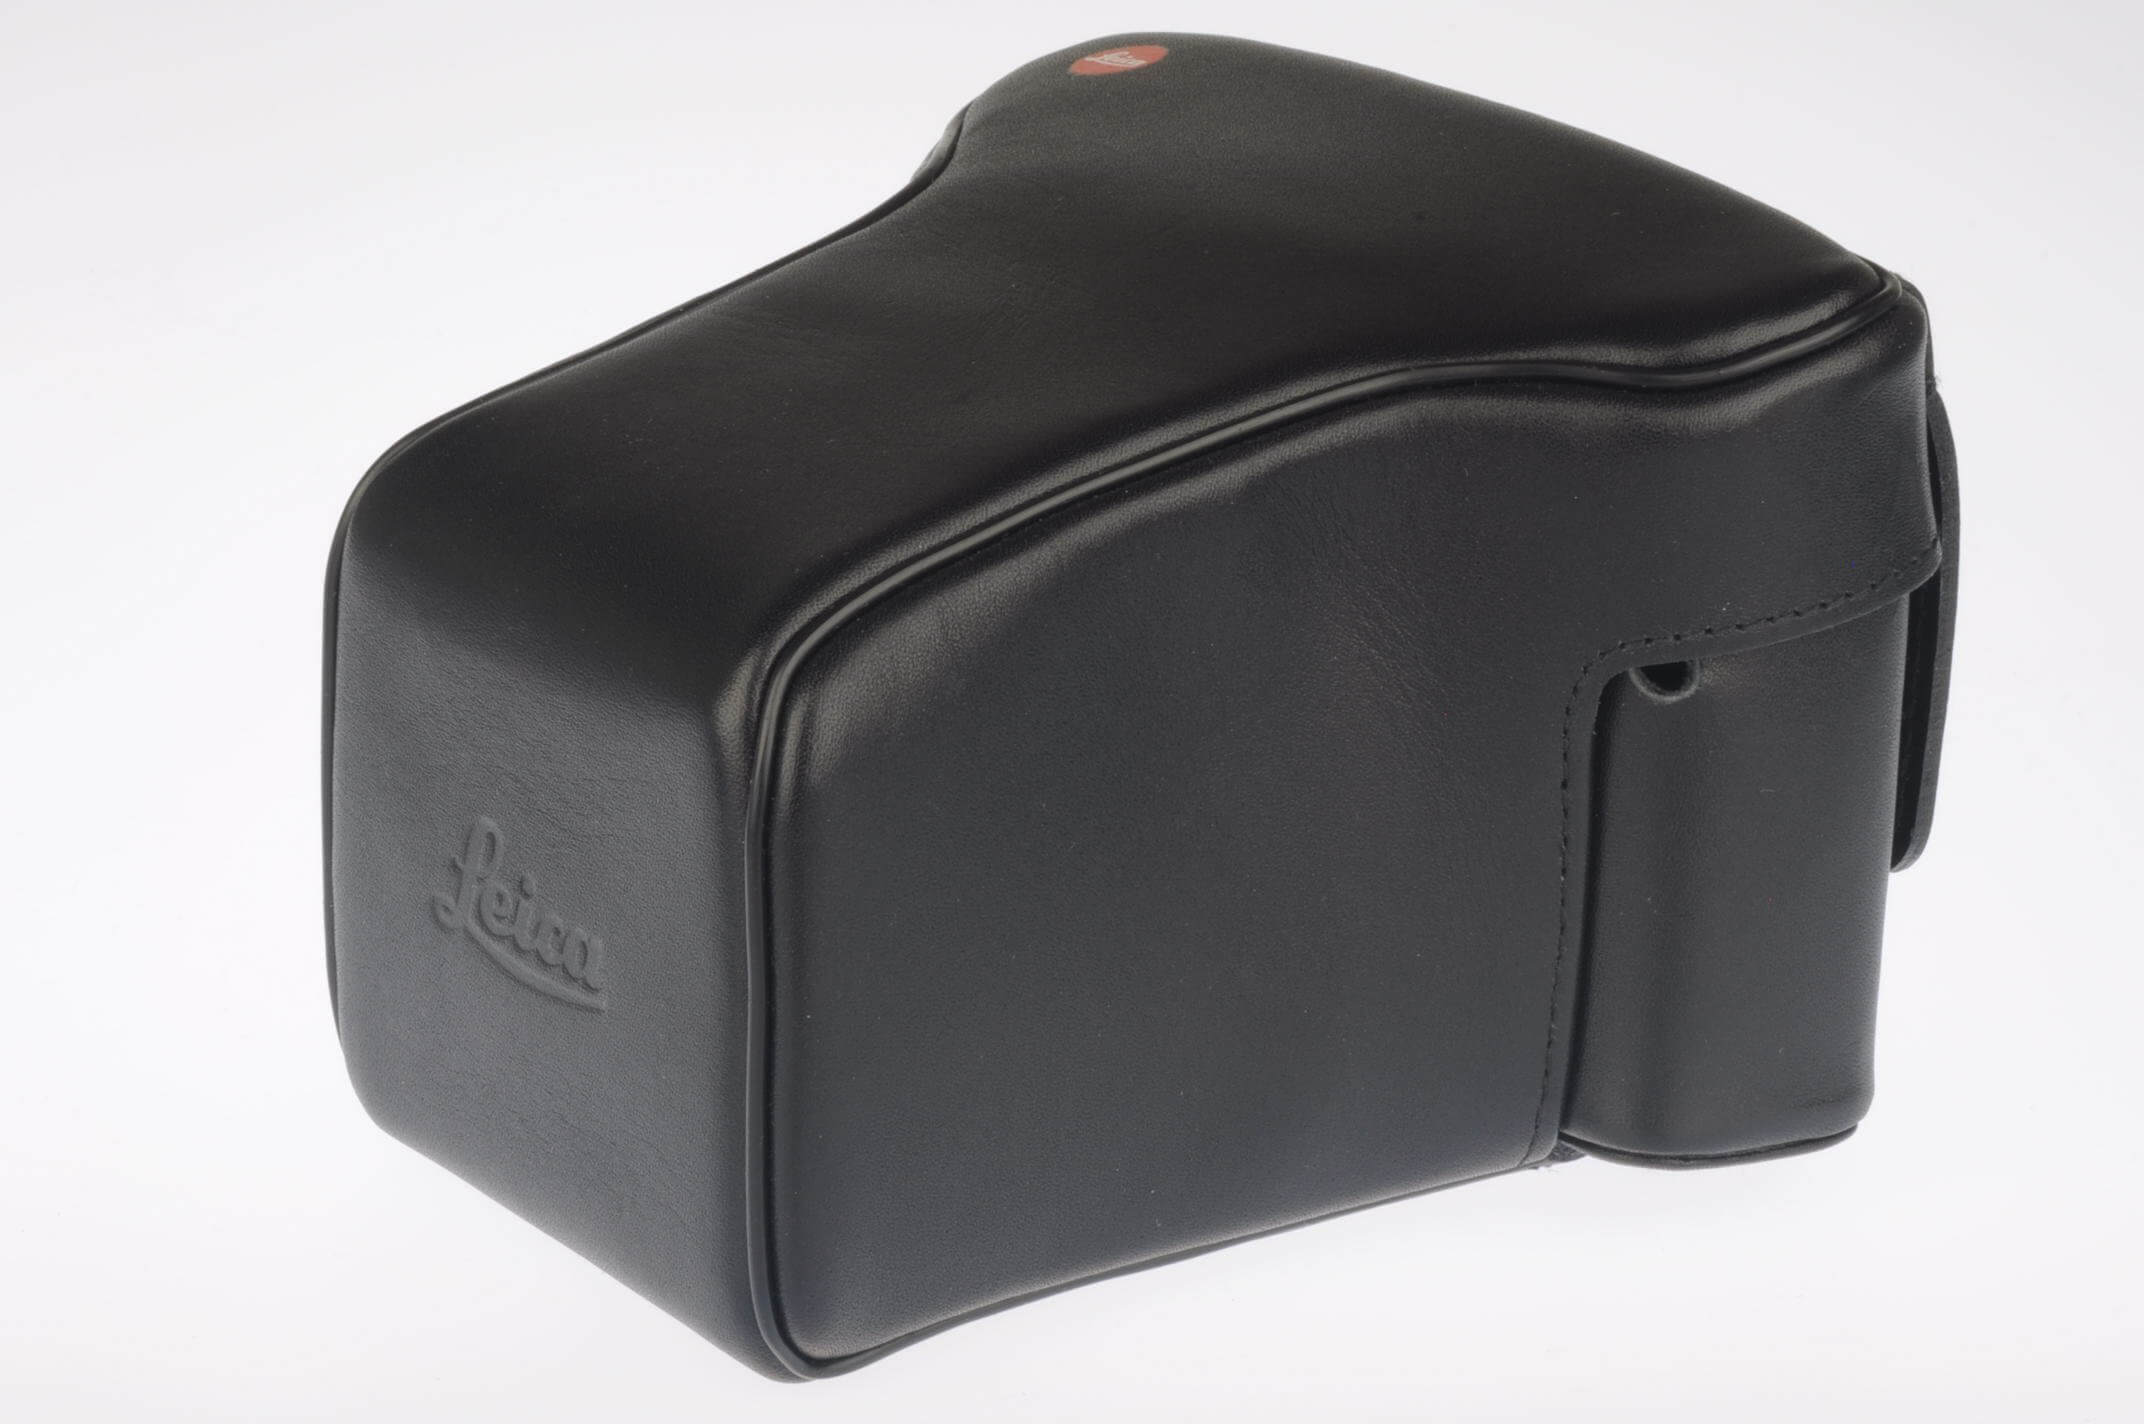 Leica R7 ever-ready case, long-nosed, almost mint